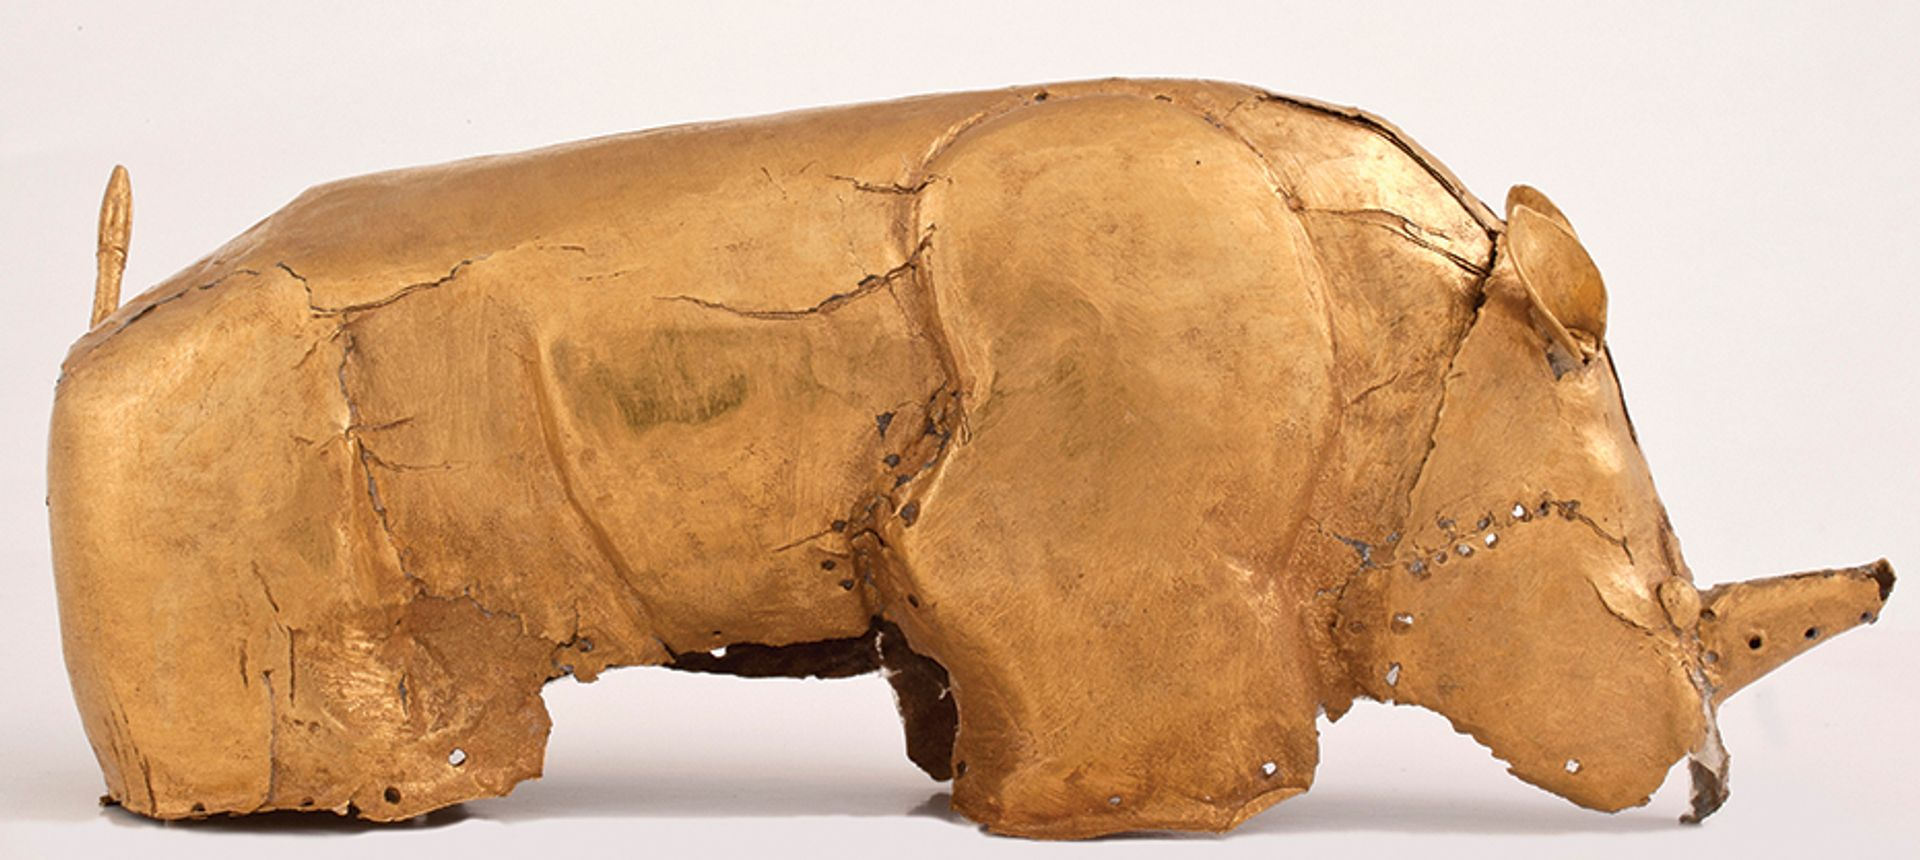 The gold foil rhino from the Mapungubwe collection © University of Pretoria